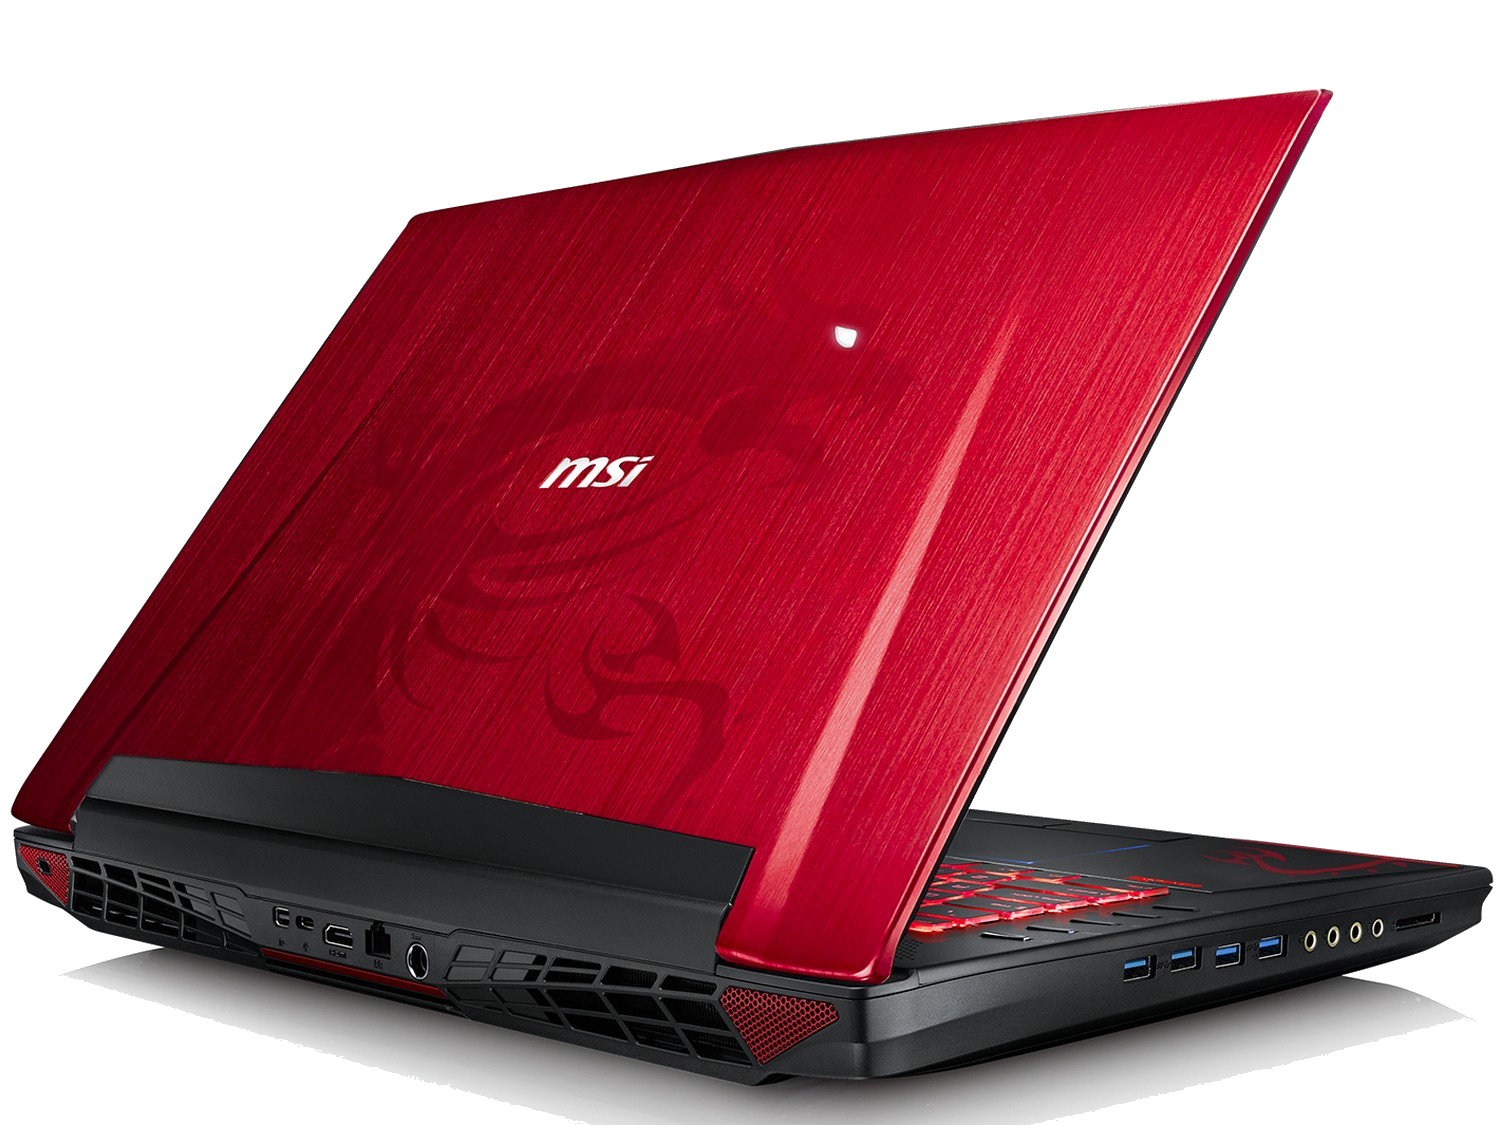 MSI GT72S Dominator Pro G Dragon Edition 6QF-058RU